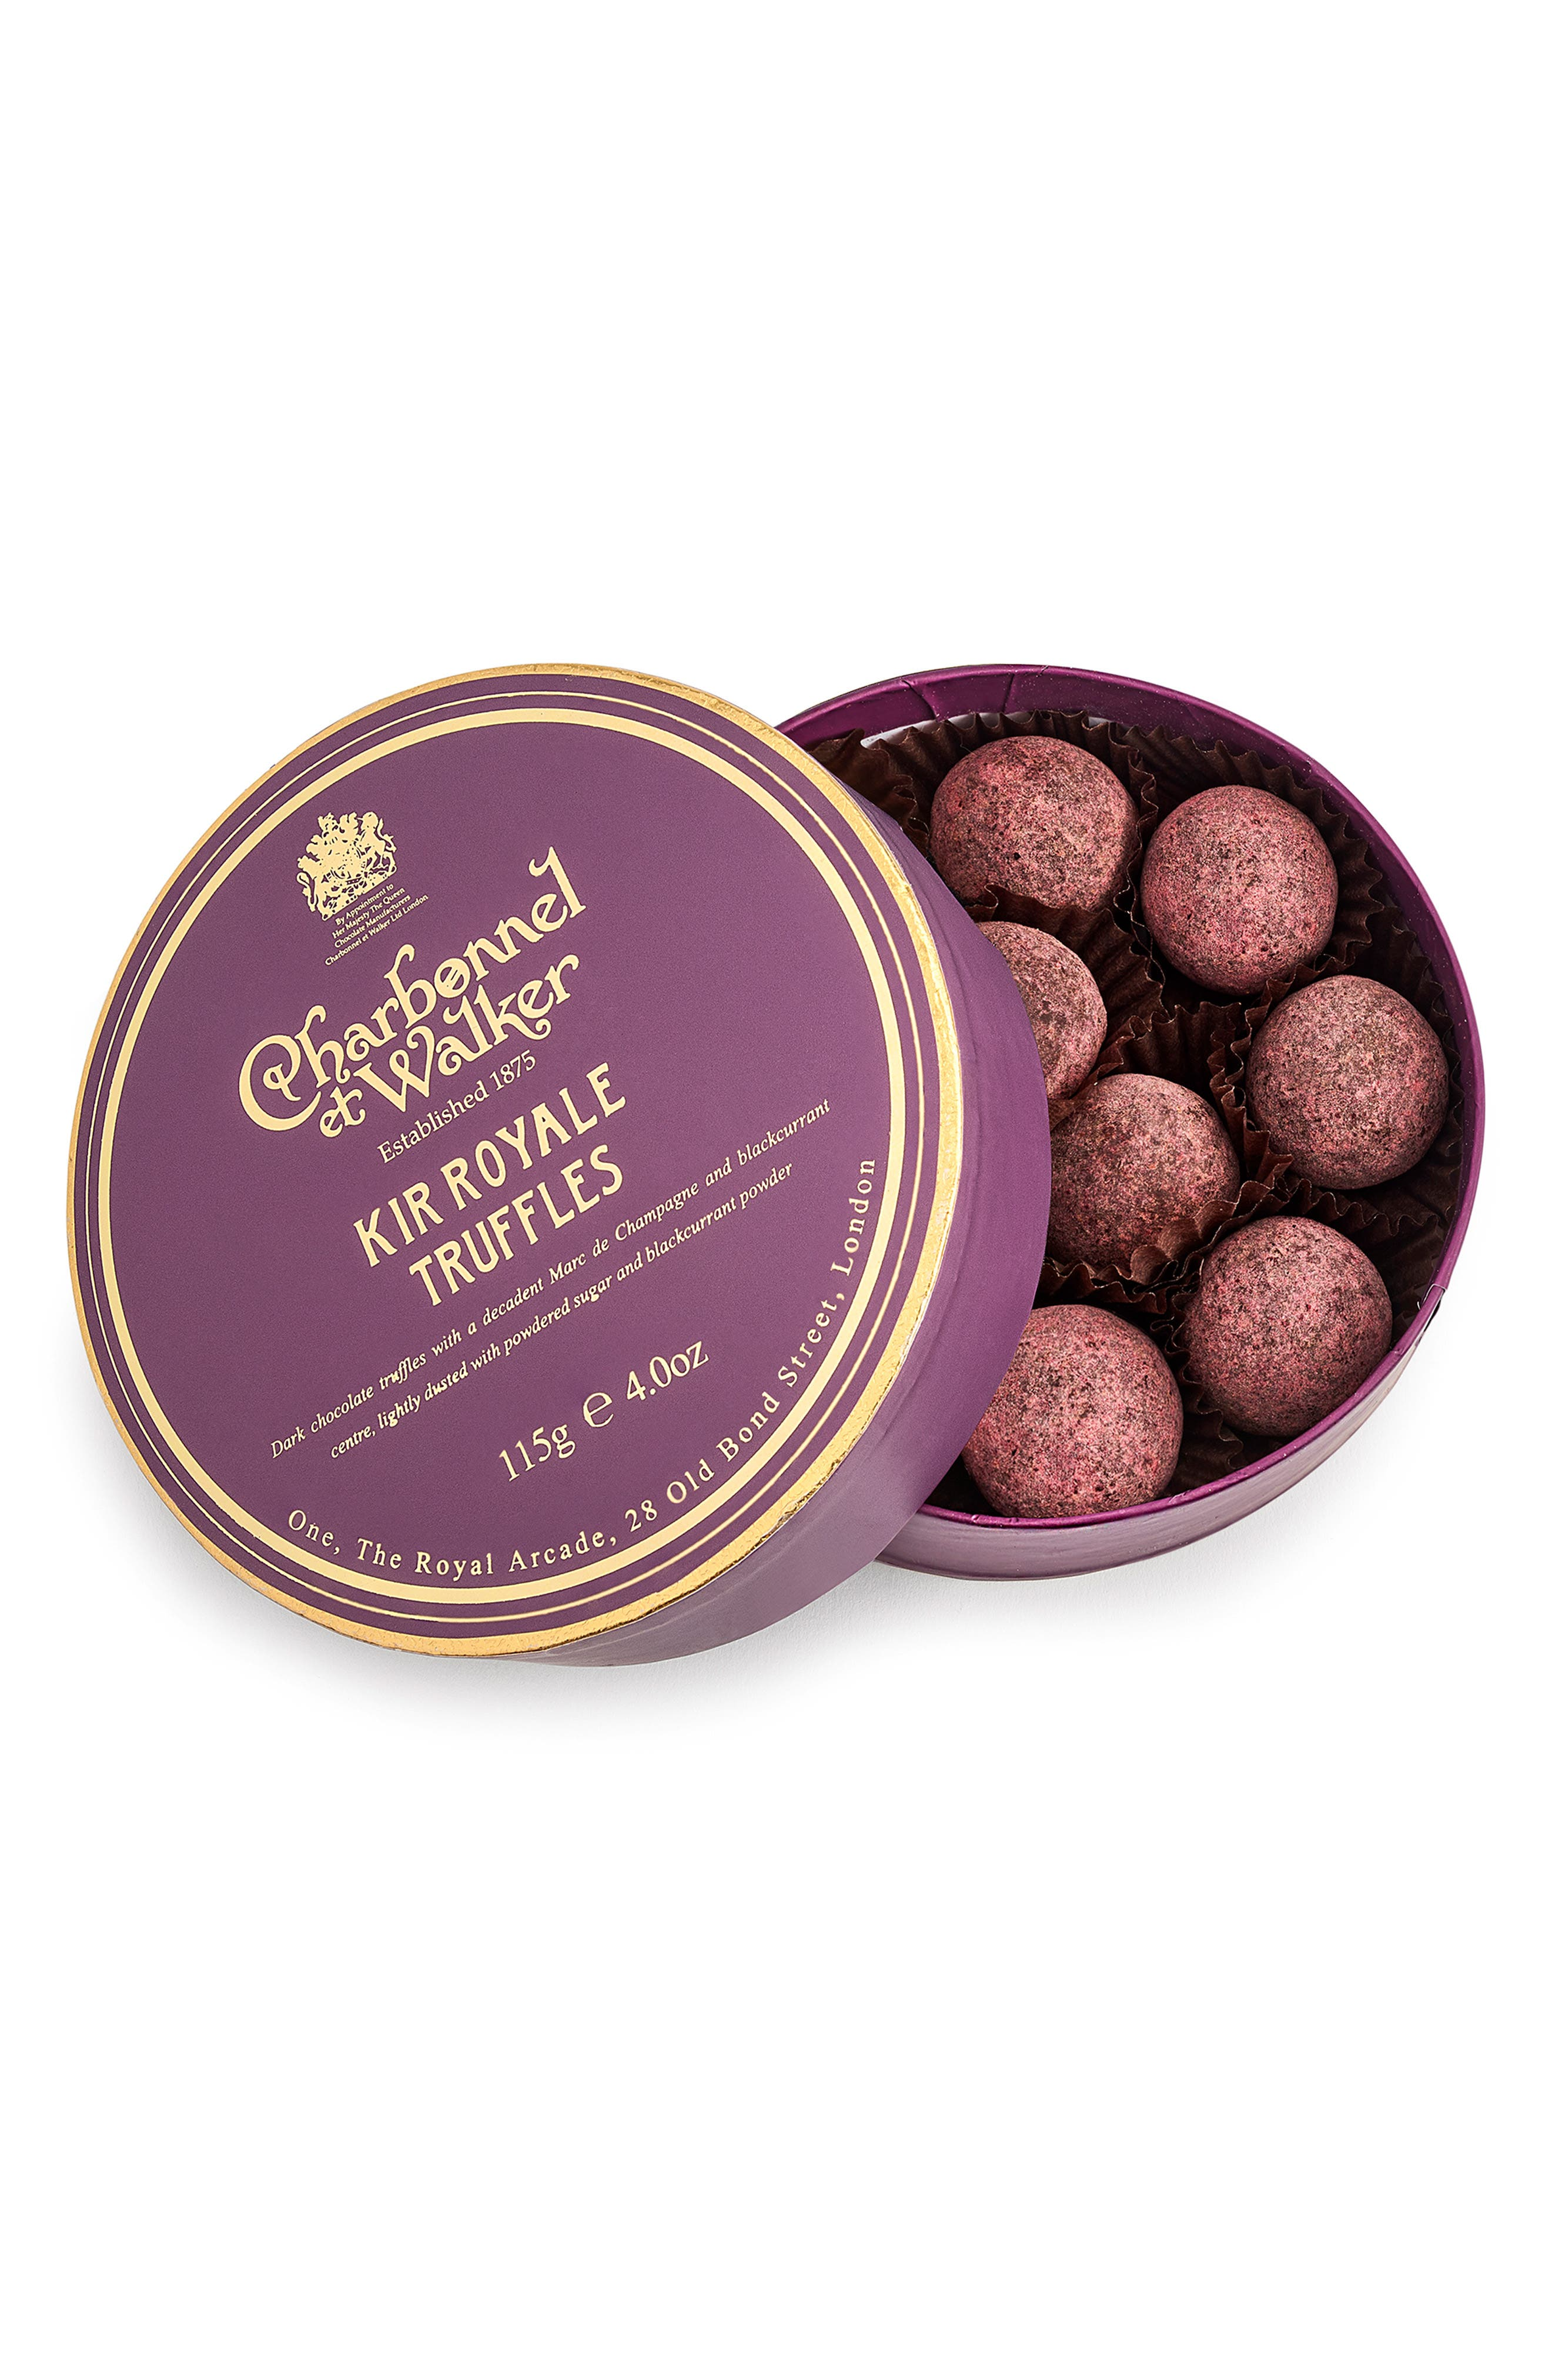 Flavored Chocolate Truffles in Gift Box,                         Main,                         color, KIR ROYALE